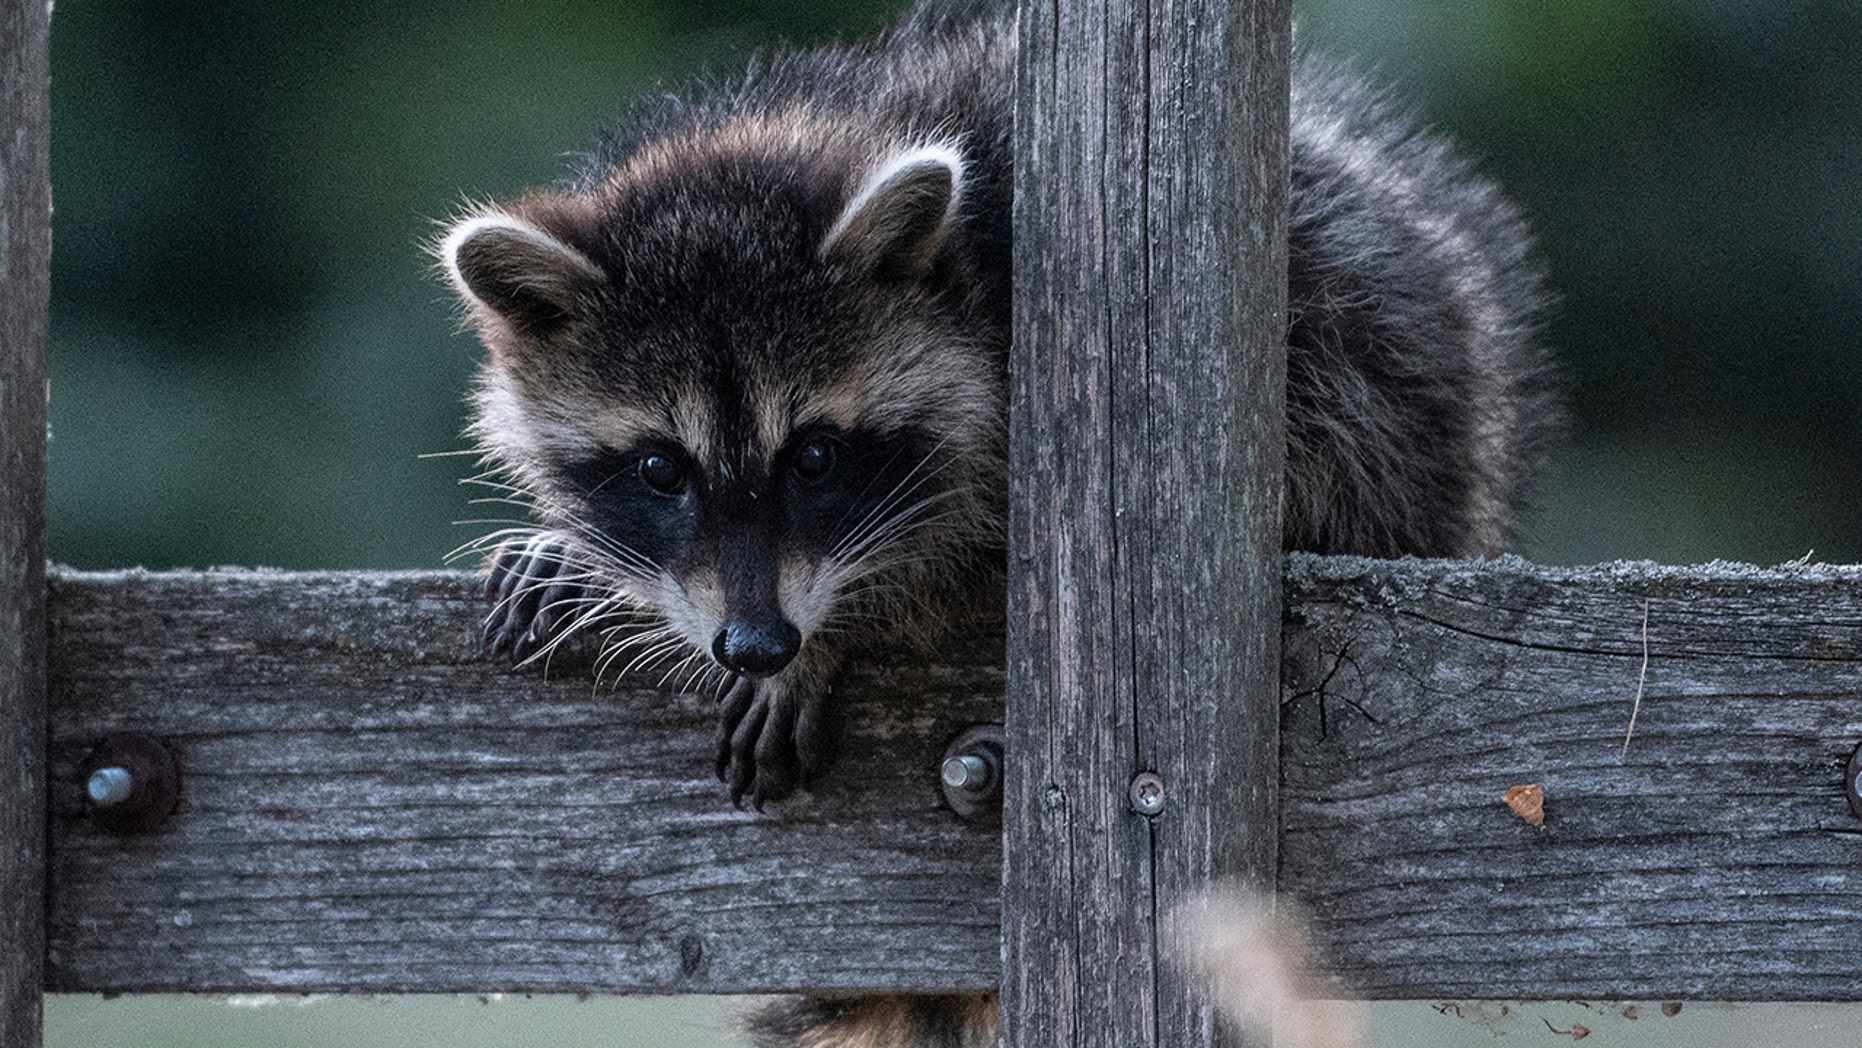 In this July 4, 2018 photo a raccoon sits on a fence in Prietzen, eastern Germany. (Paul Zinken/dpa via AP)